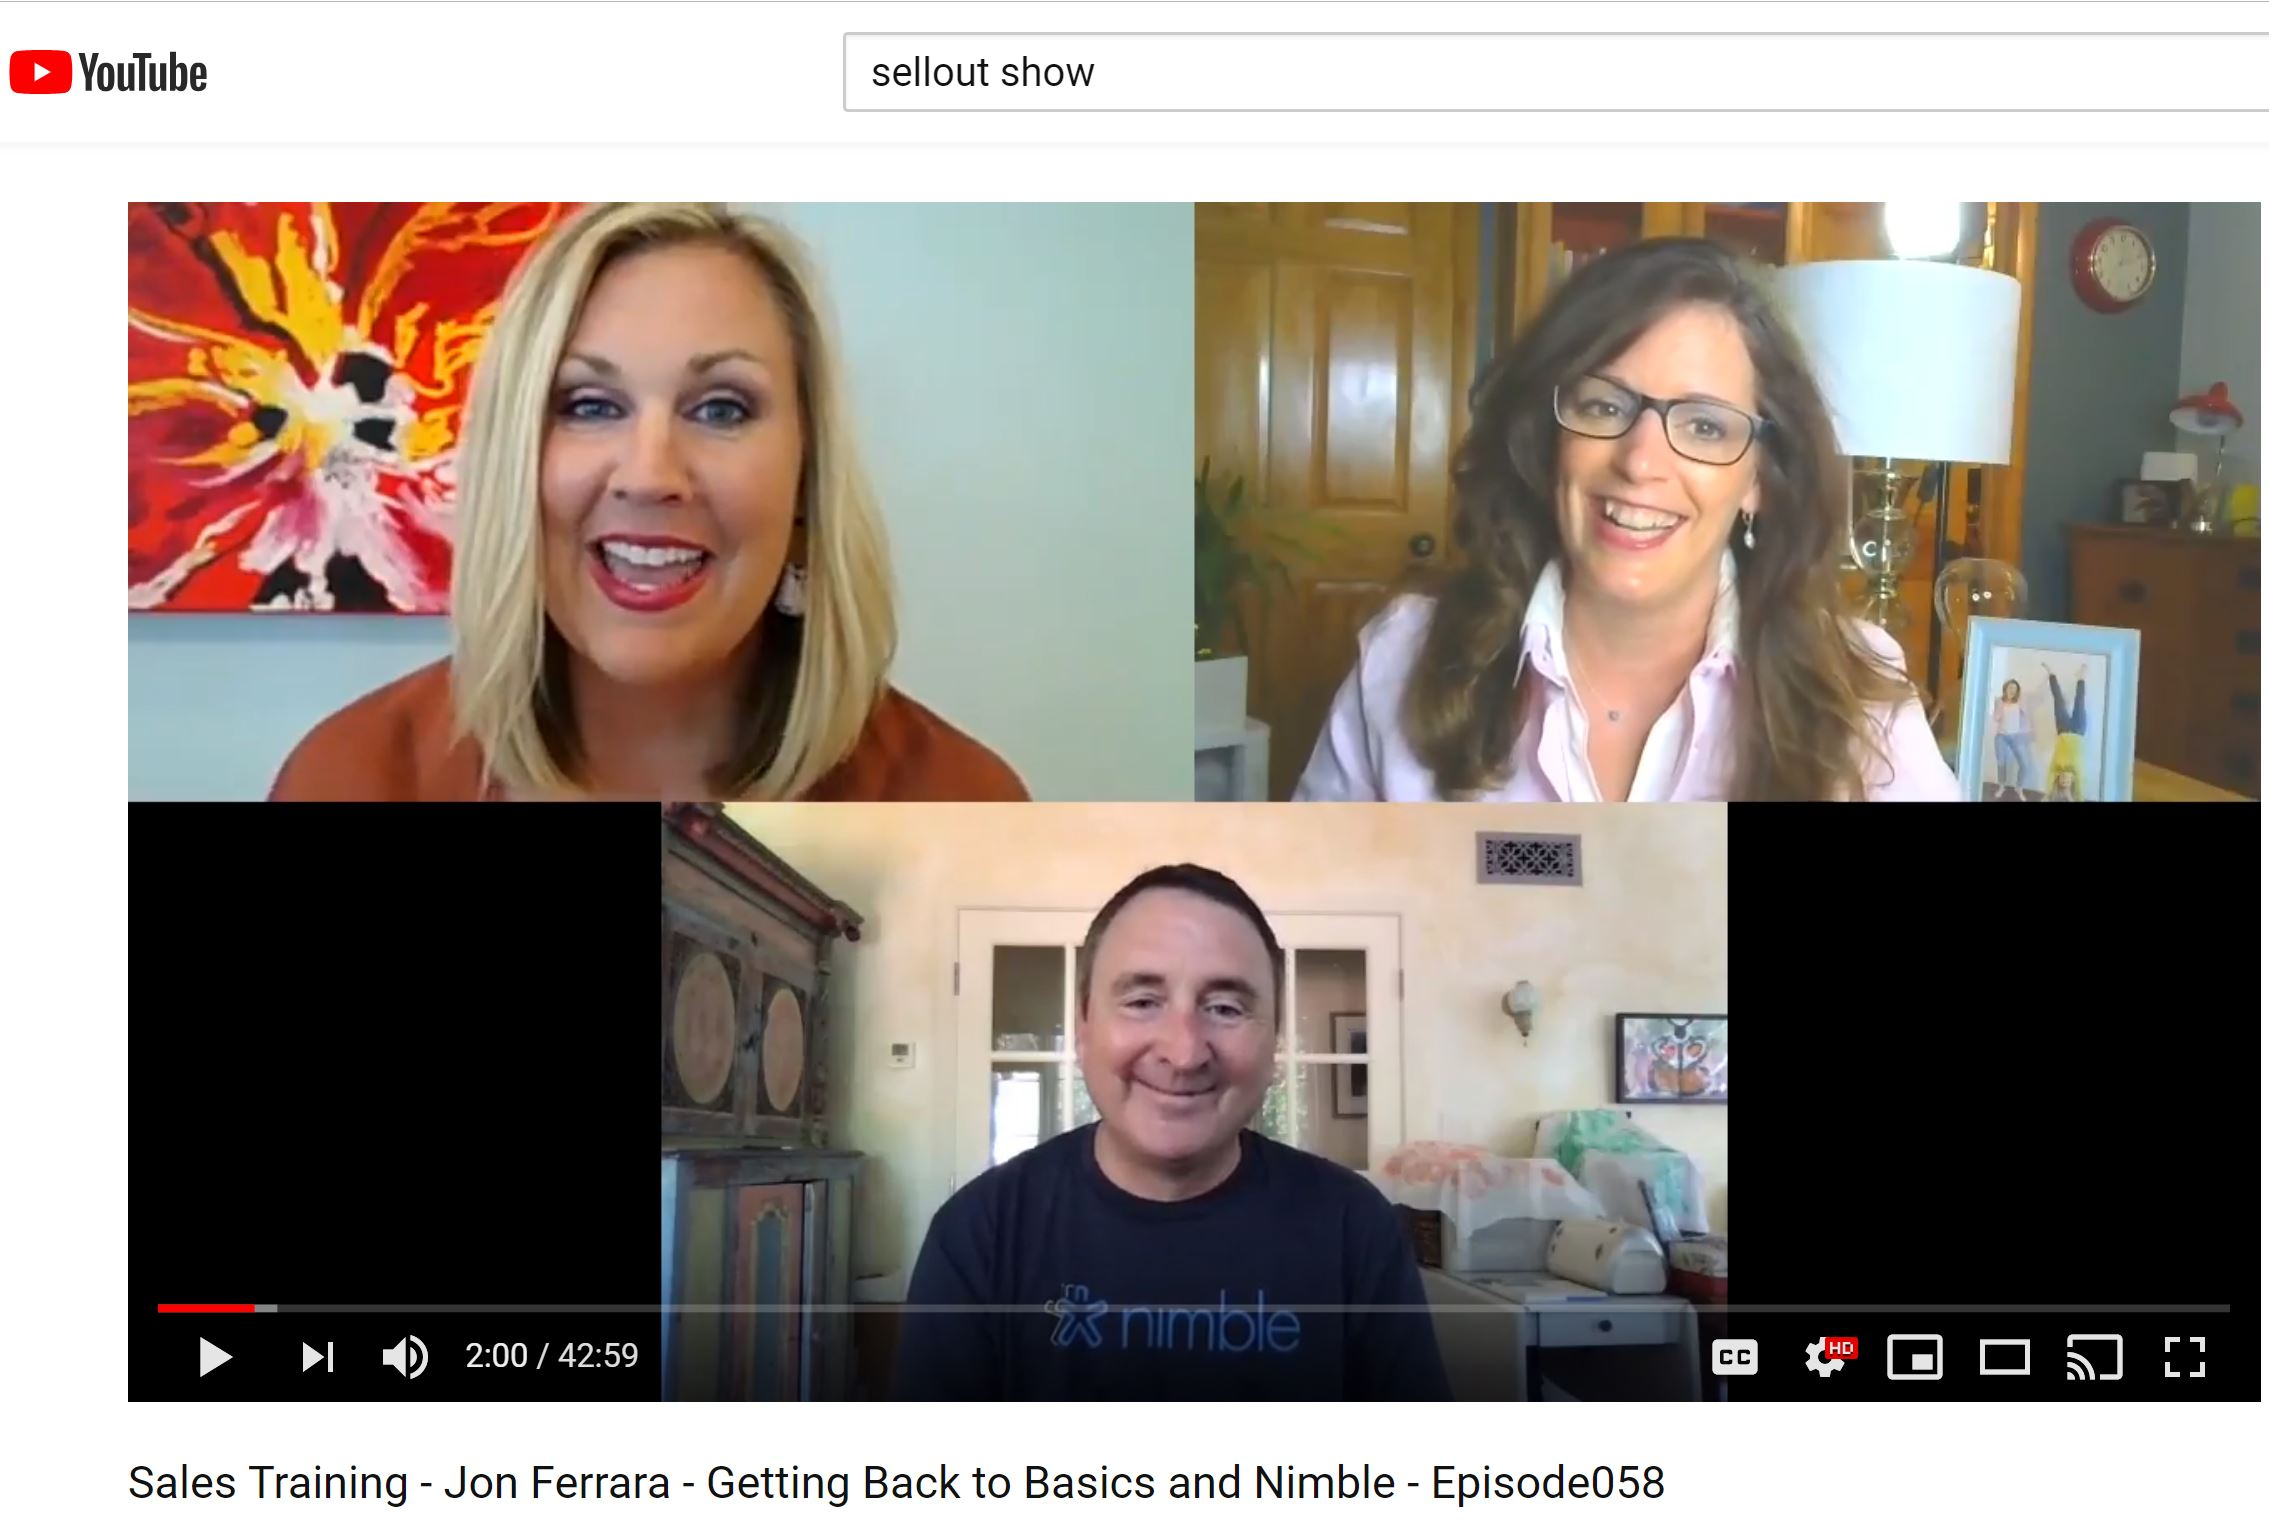 SellOut Show Nimble Guest Jon Ferrara Gets Back to Basics in Sales